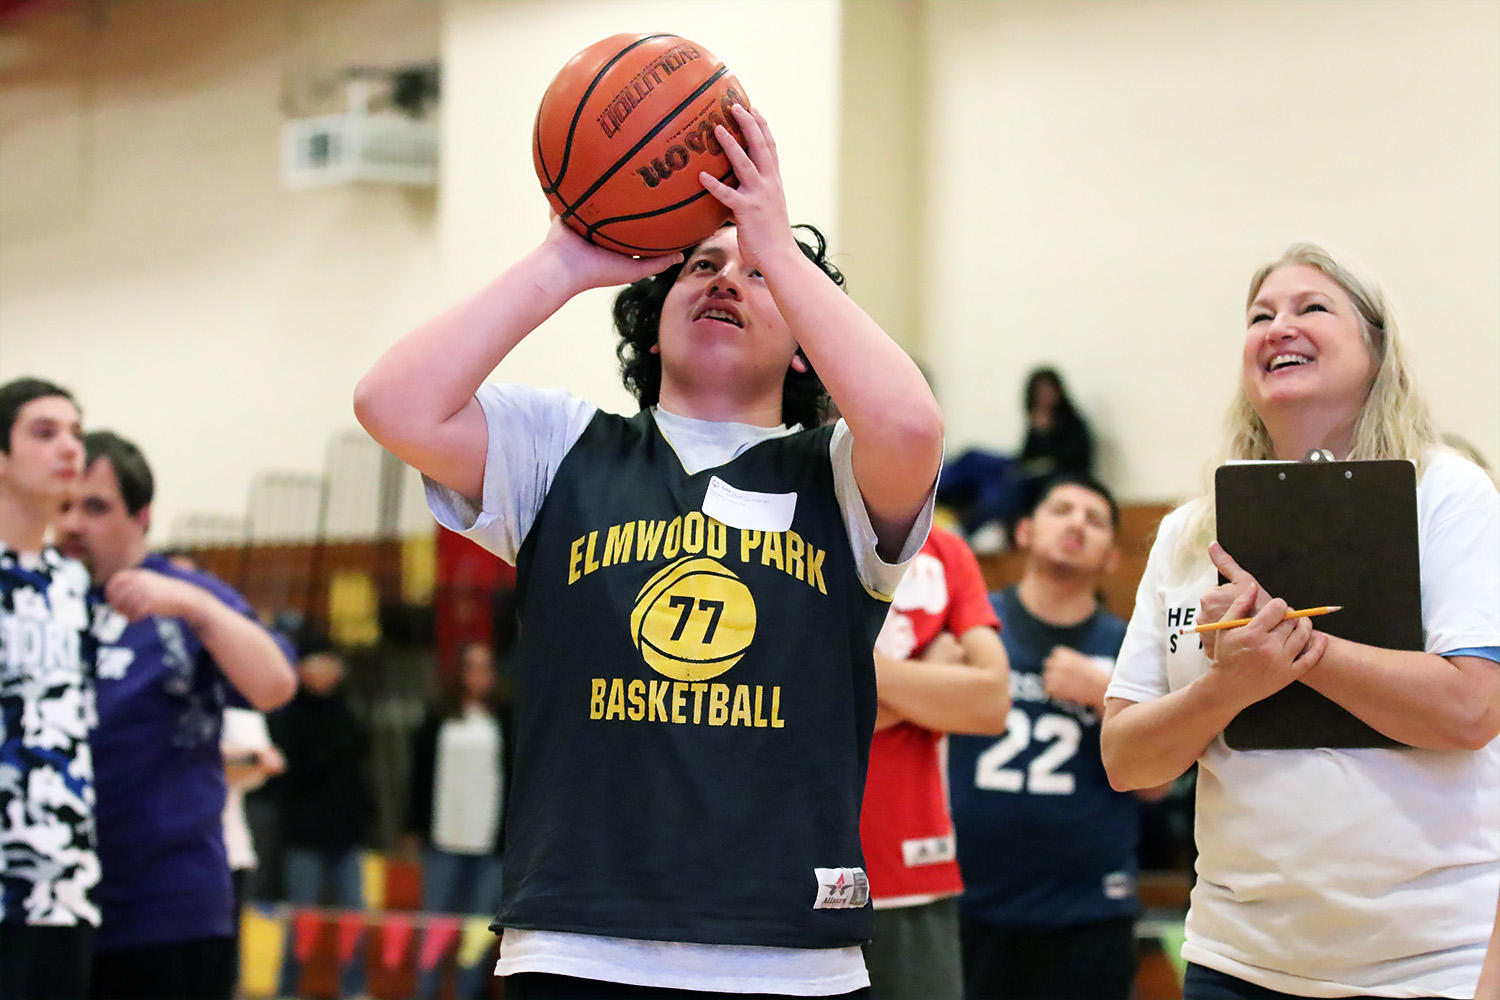 Luis from EPHS competes in the Special Olympics Illinois basketball skills event.